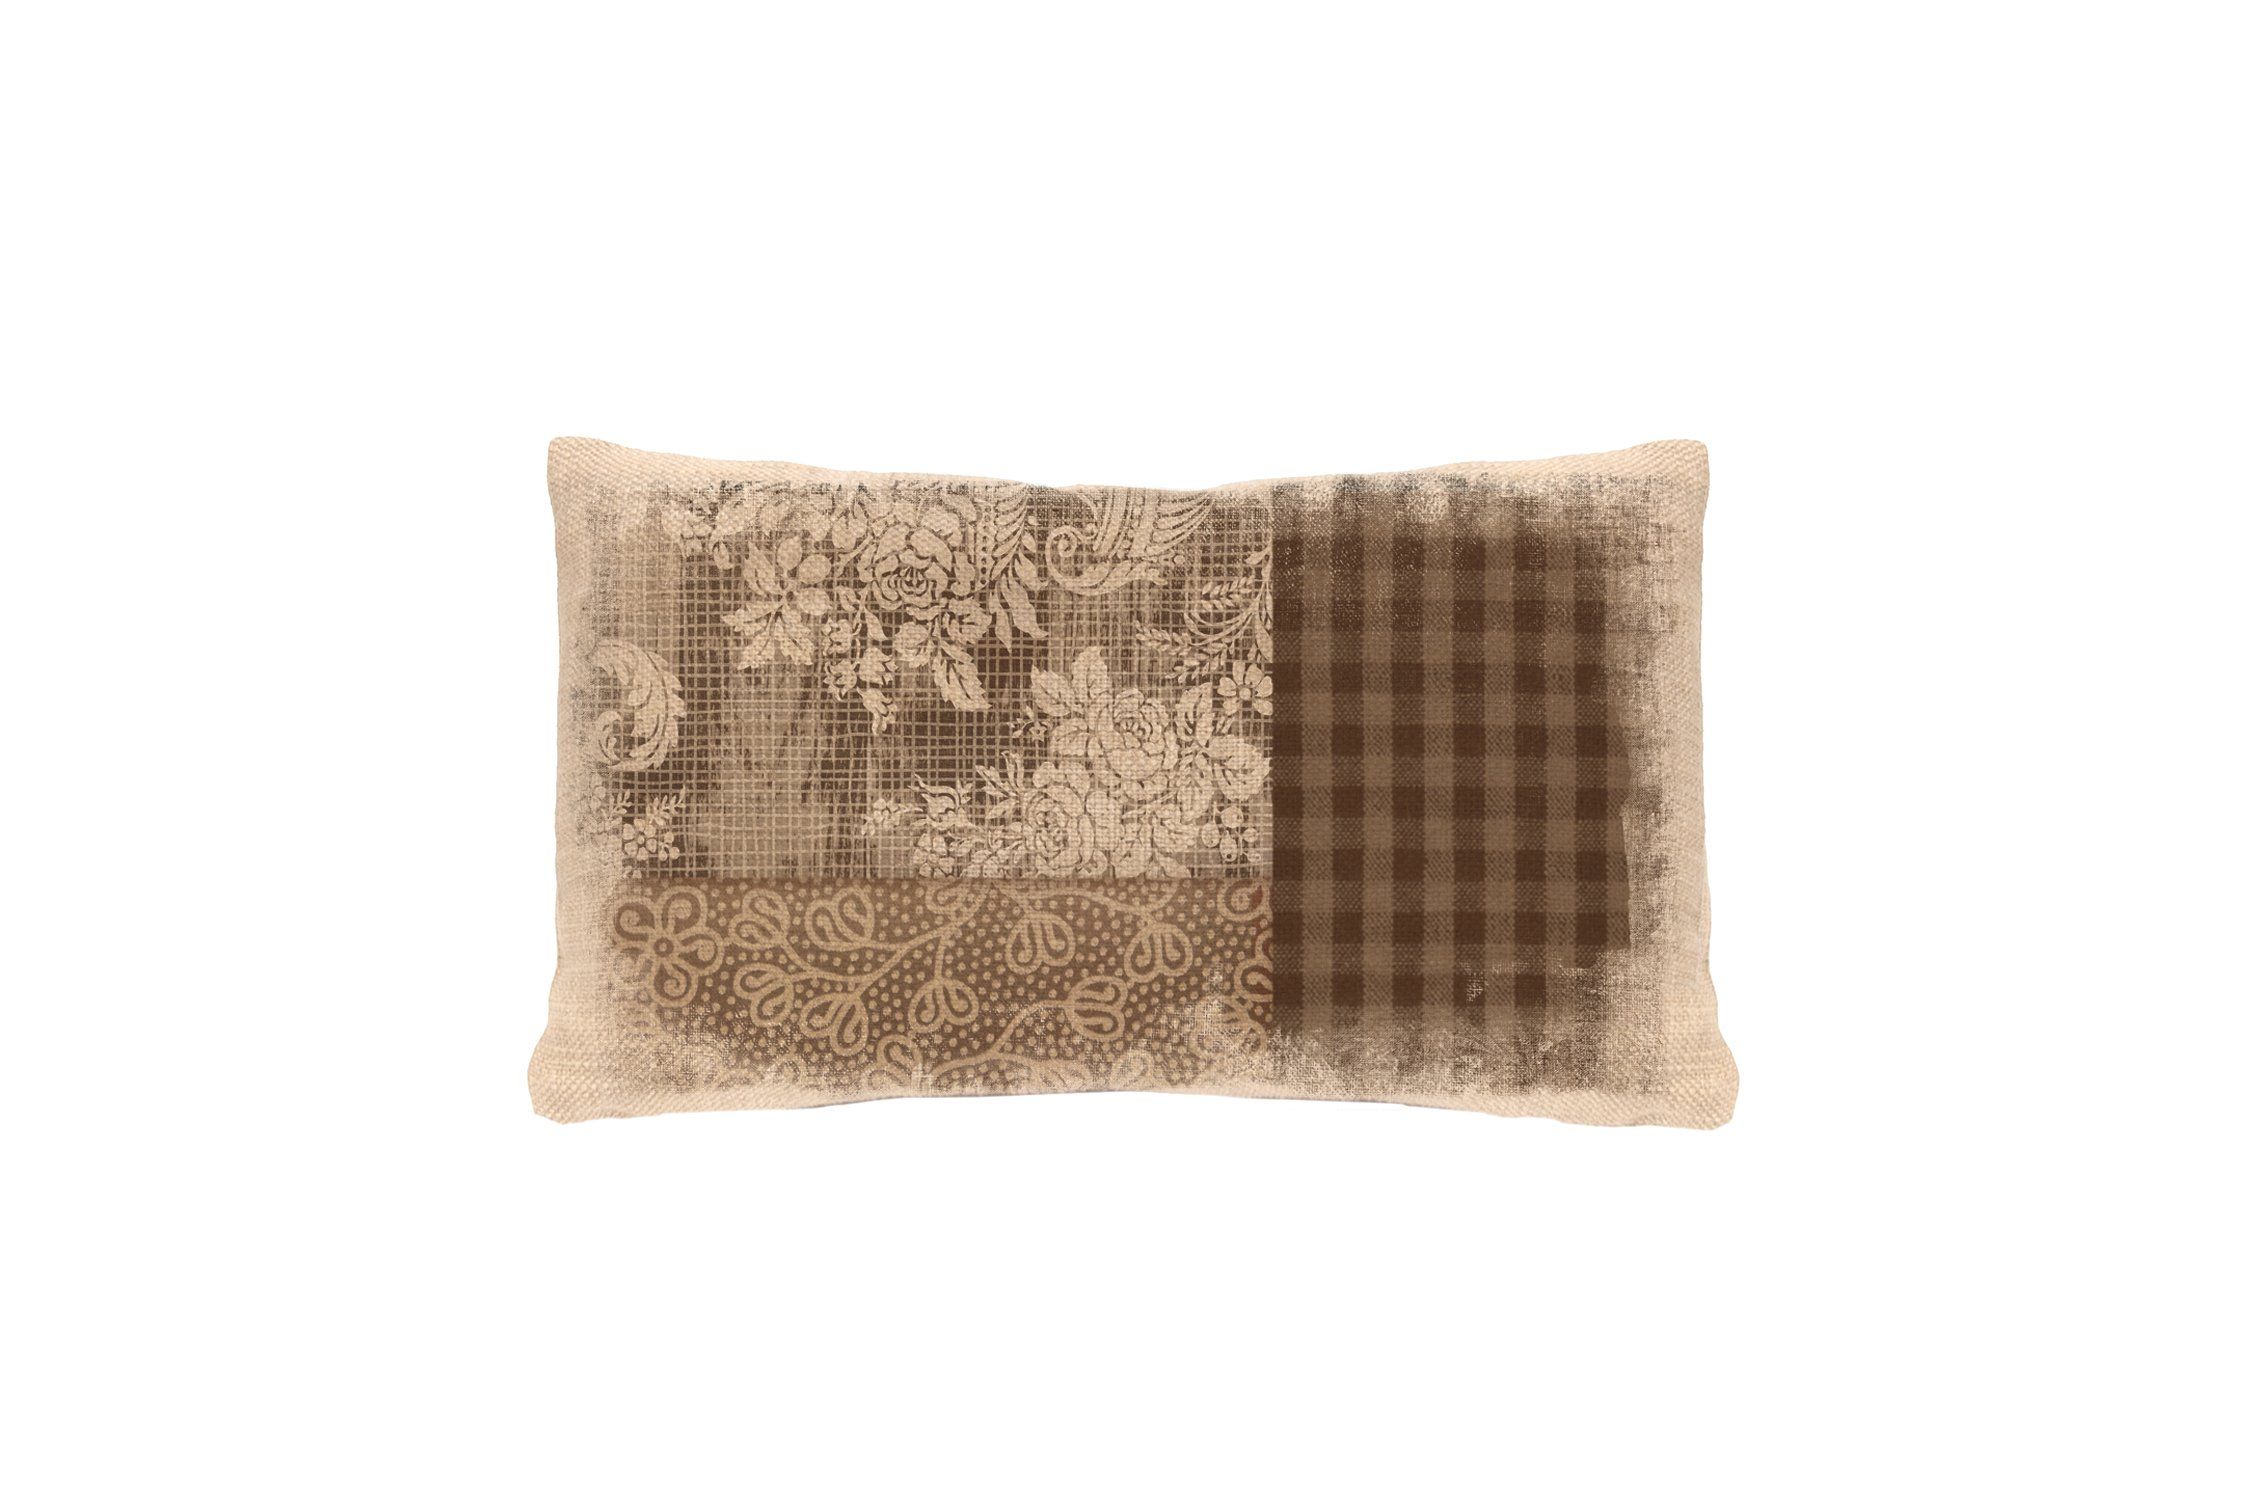 Heritage Lace Alpine Woods Textural Pillow Cover, 12 by 20-Inch, Natural